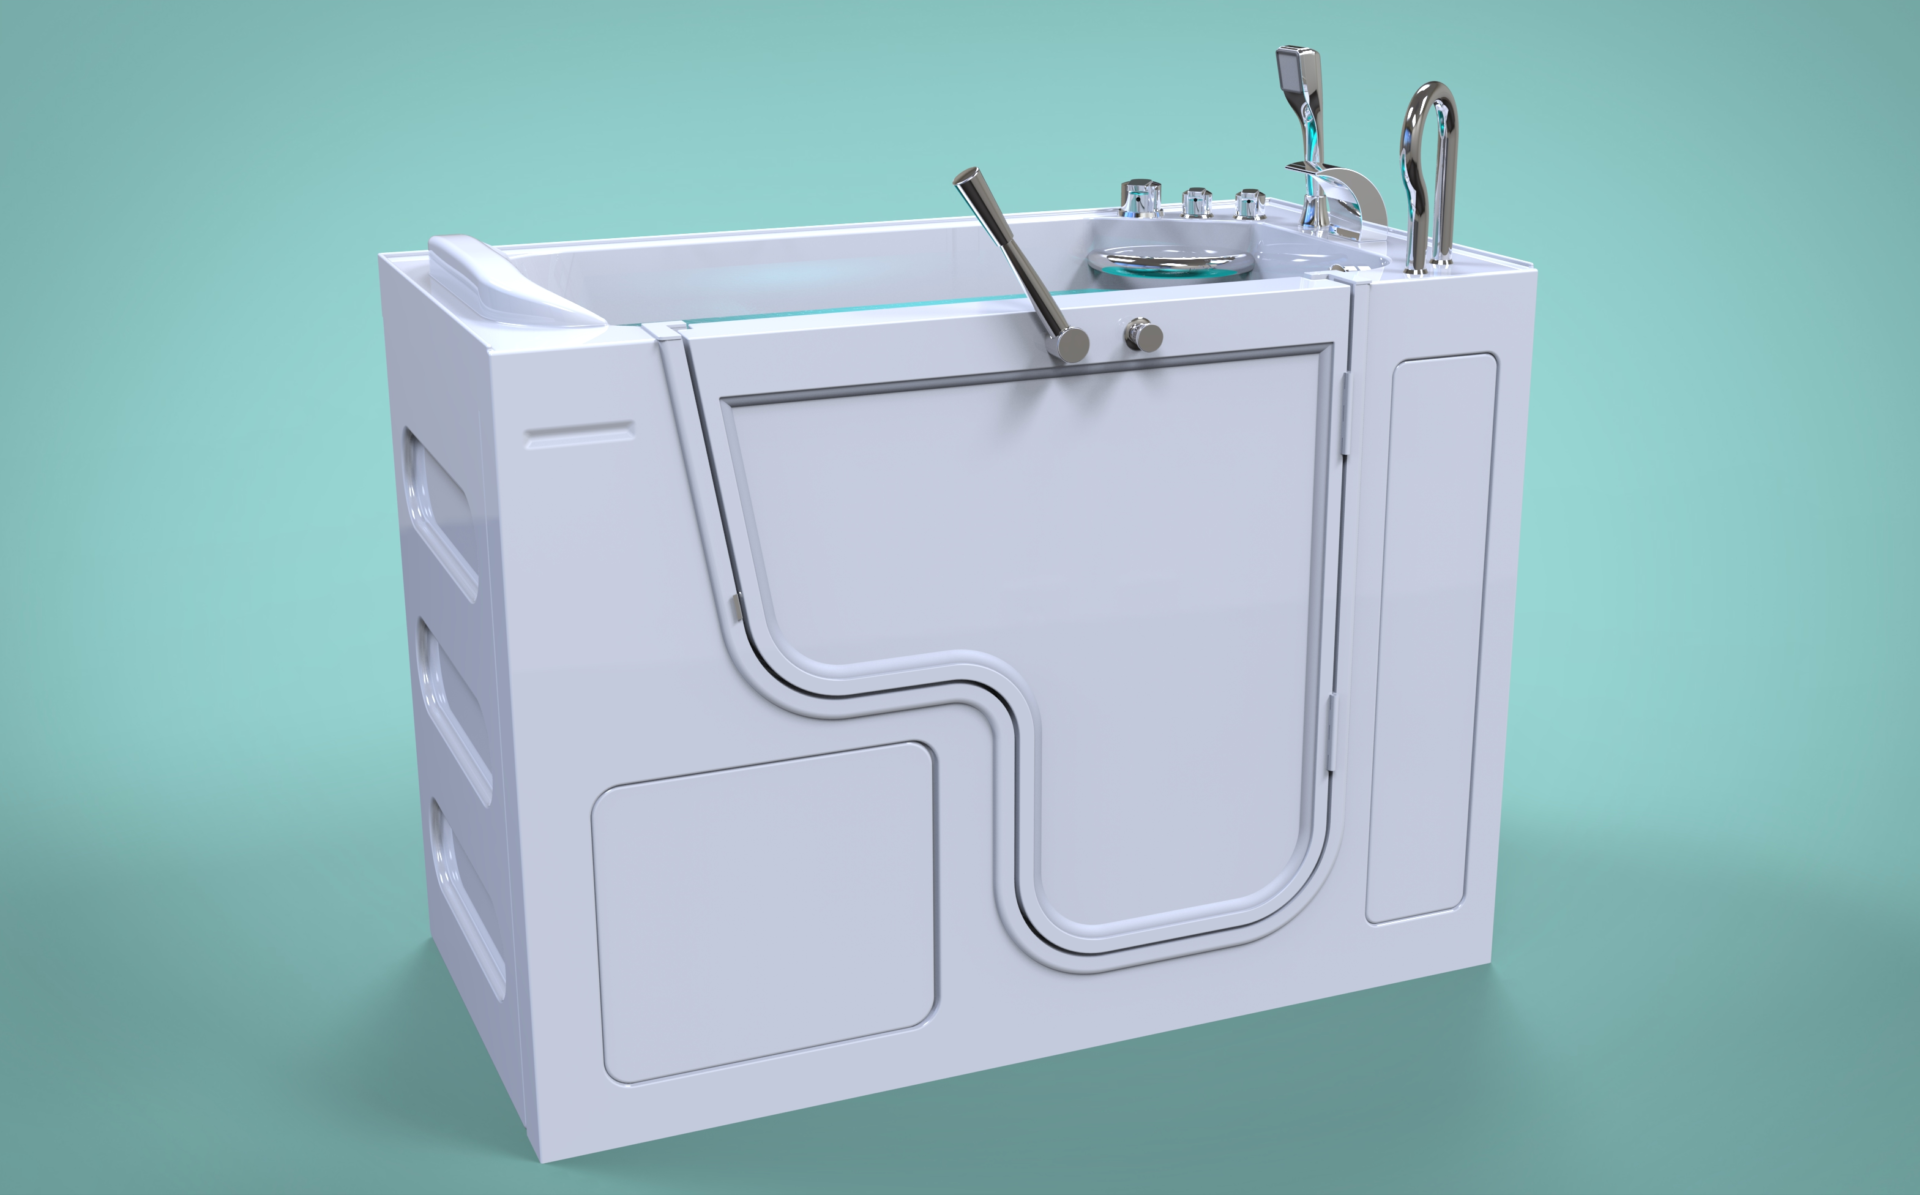 3d model of Panama style walk-in bathtub with door closed